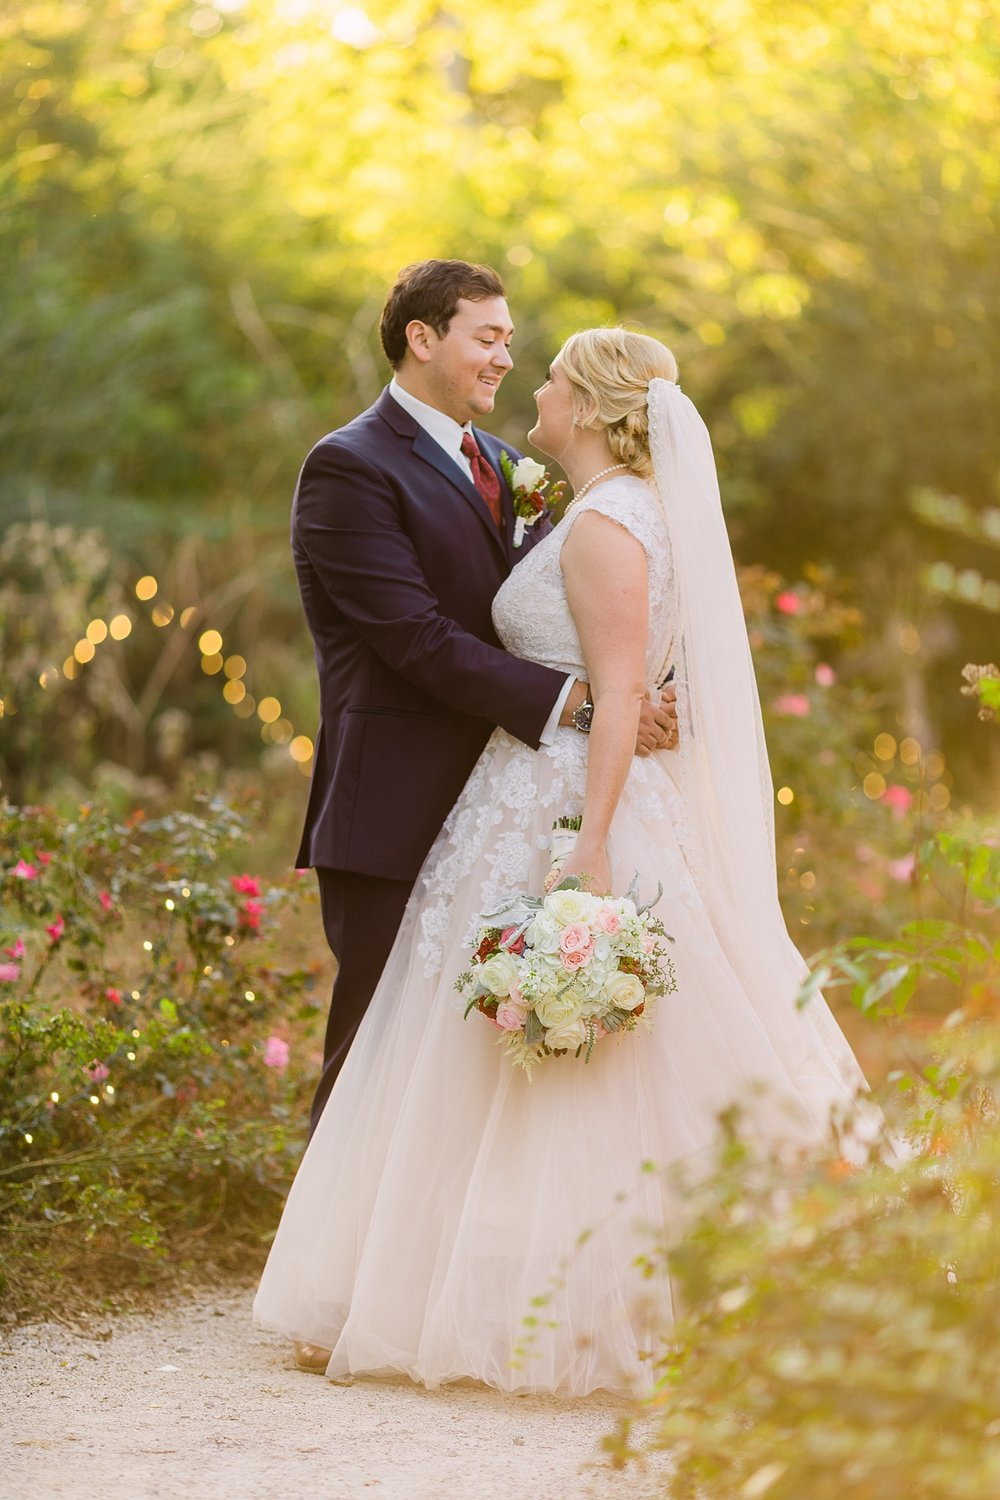 wedding-photographers-nashville-tn.jpg